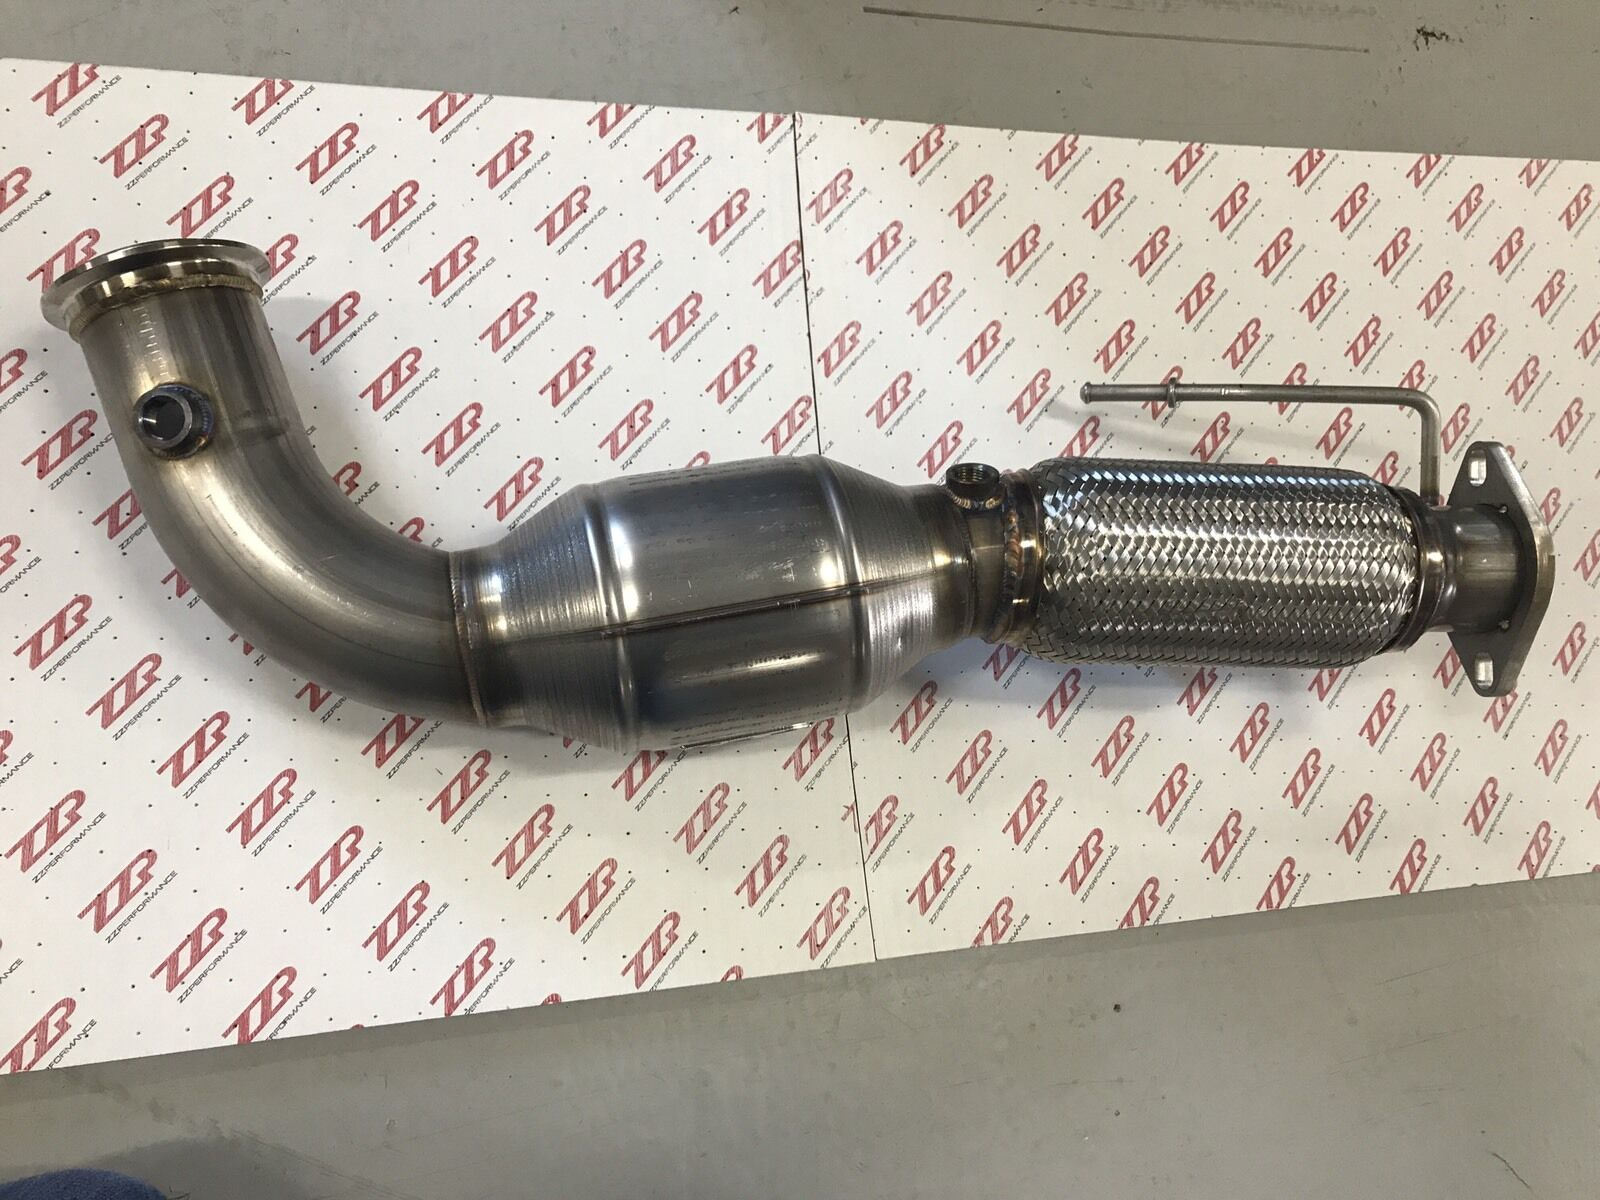 Zzp 3 Catted Stainless Downpipe 2013 16 Mkz Fusion 20l Turbo 2007 Ford Exhaust Product